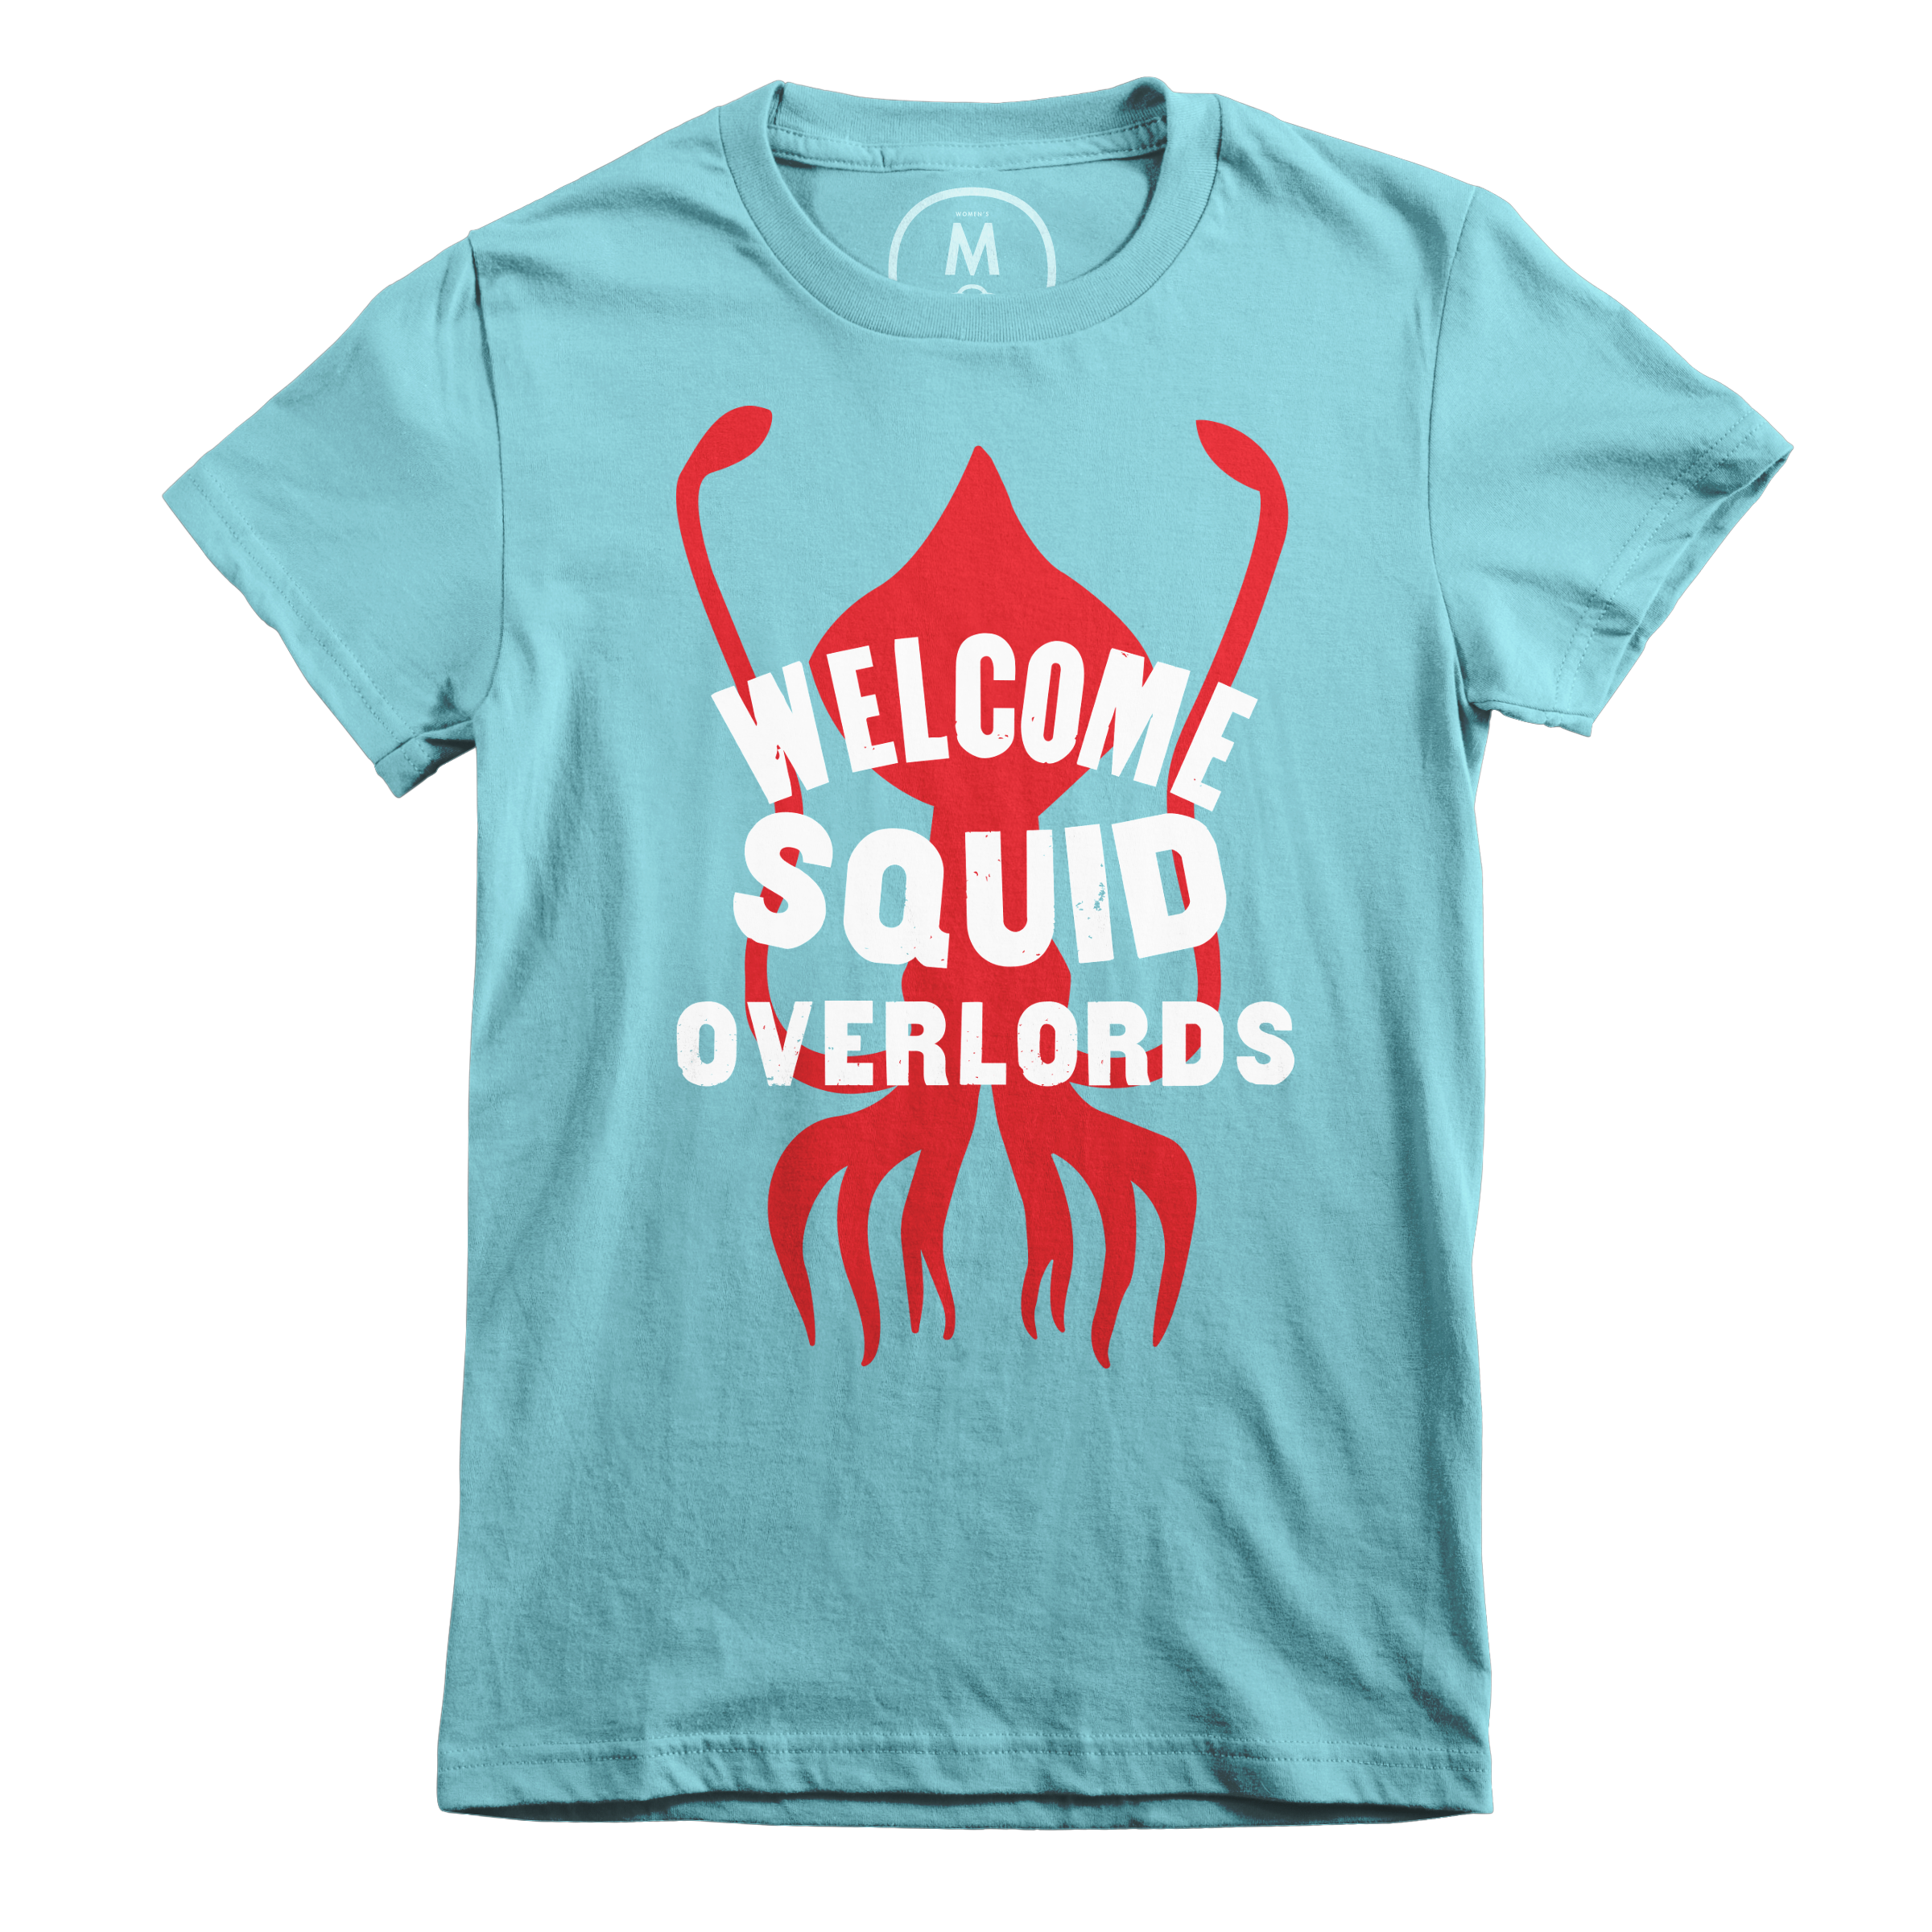 Welcome Squid Overlords Tahiti Blue (Women's)